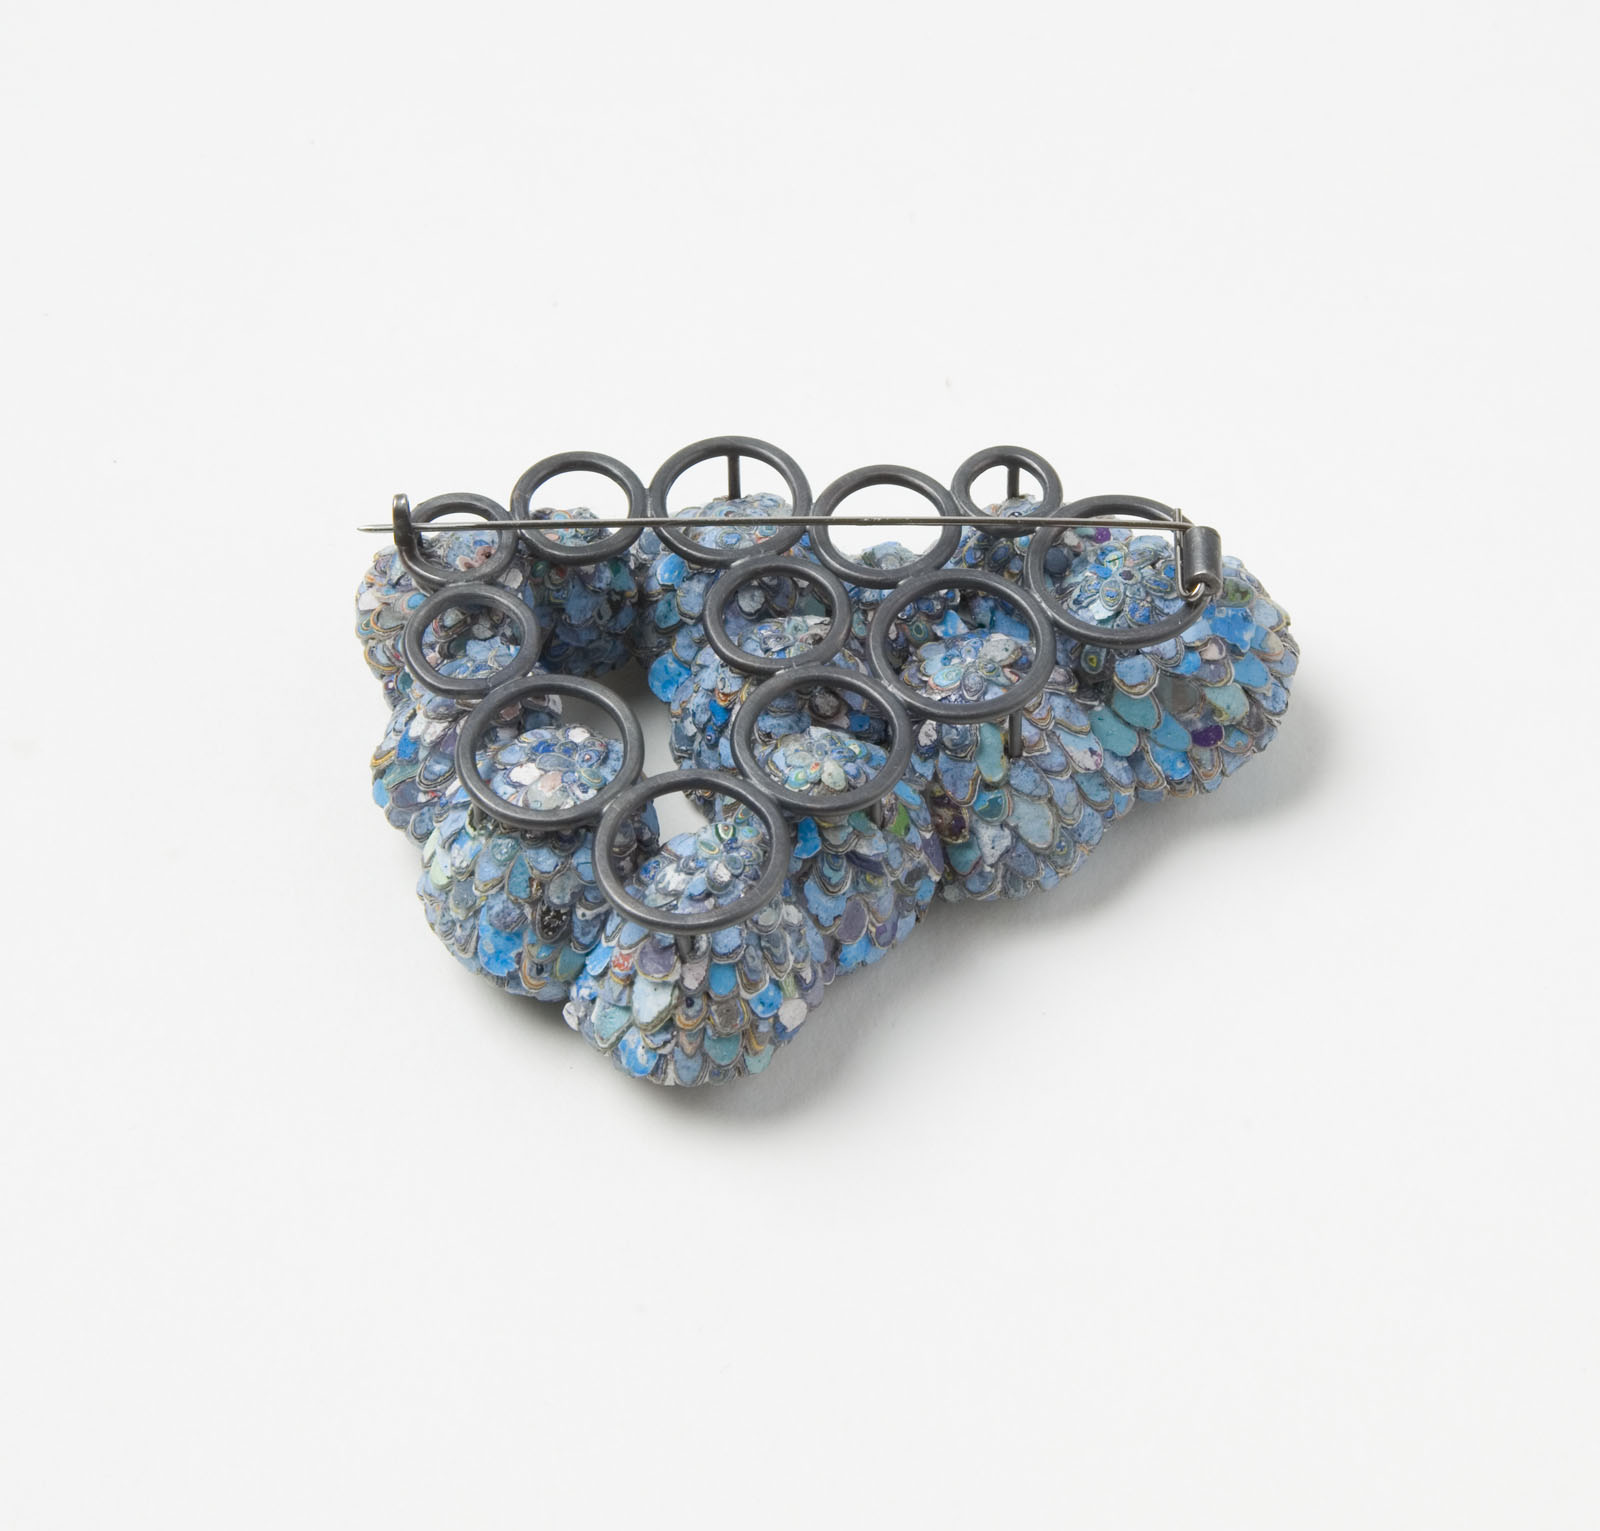 """The Secret Keepers (Blue 1)"" I Brooch, 2016 I Seed pods, graffiti, glass, silver, stainless steel I Photo: Mirei Takeuchi"